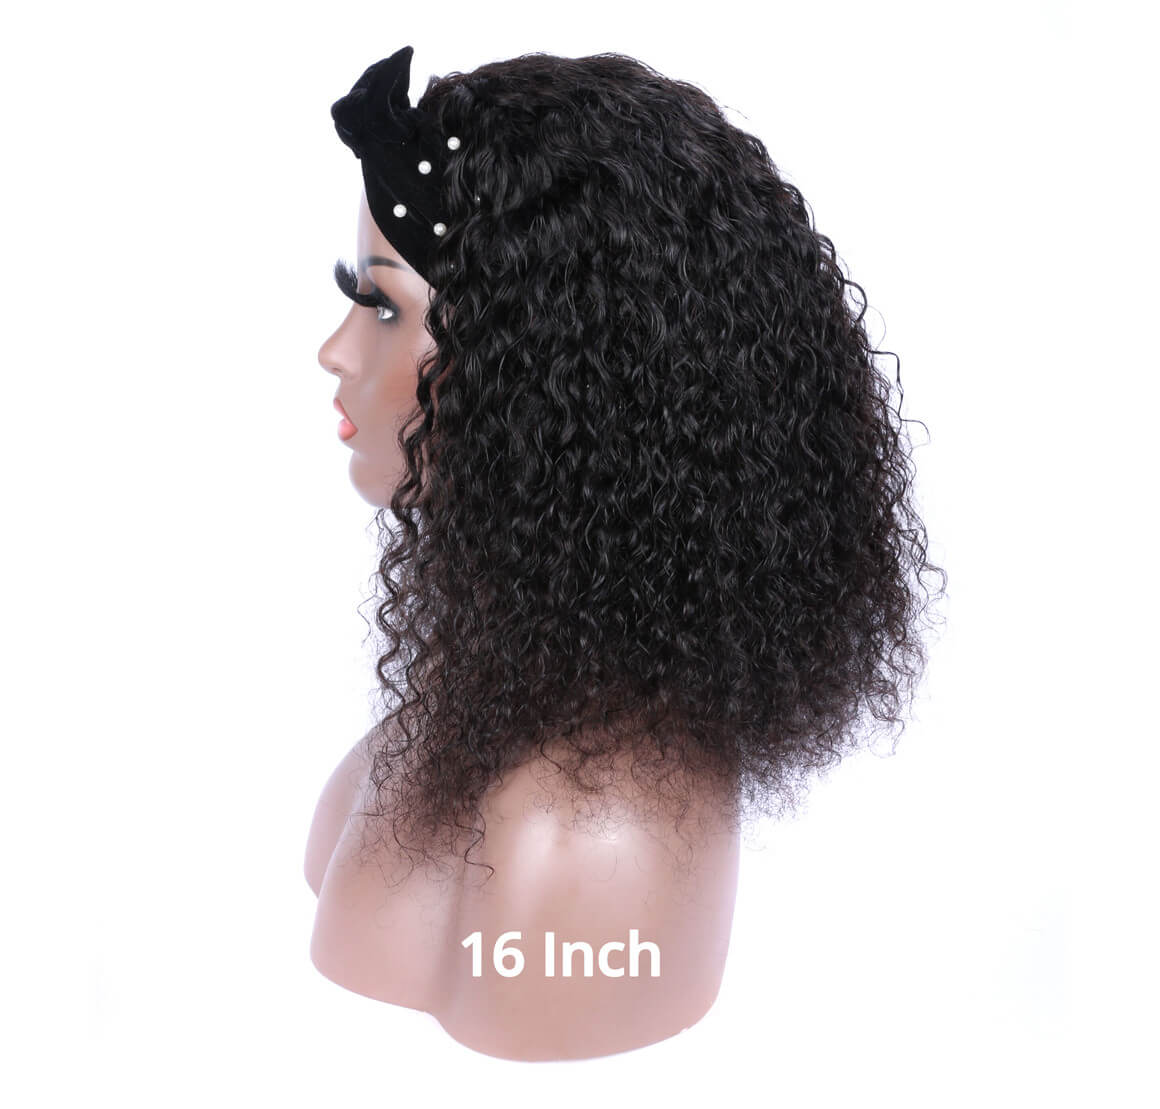 16inch Curly Wig